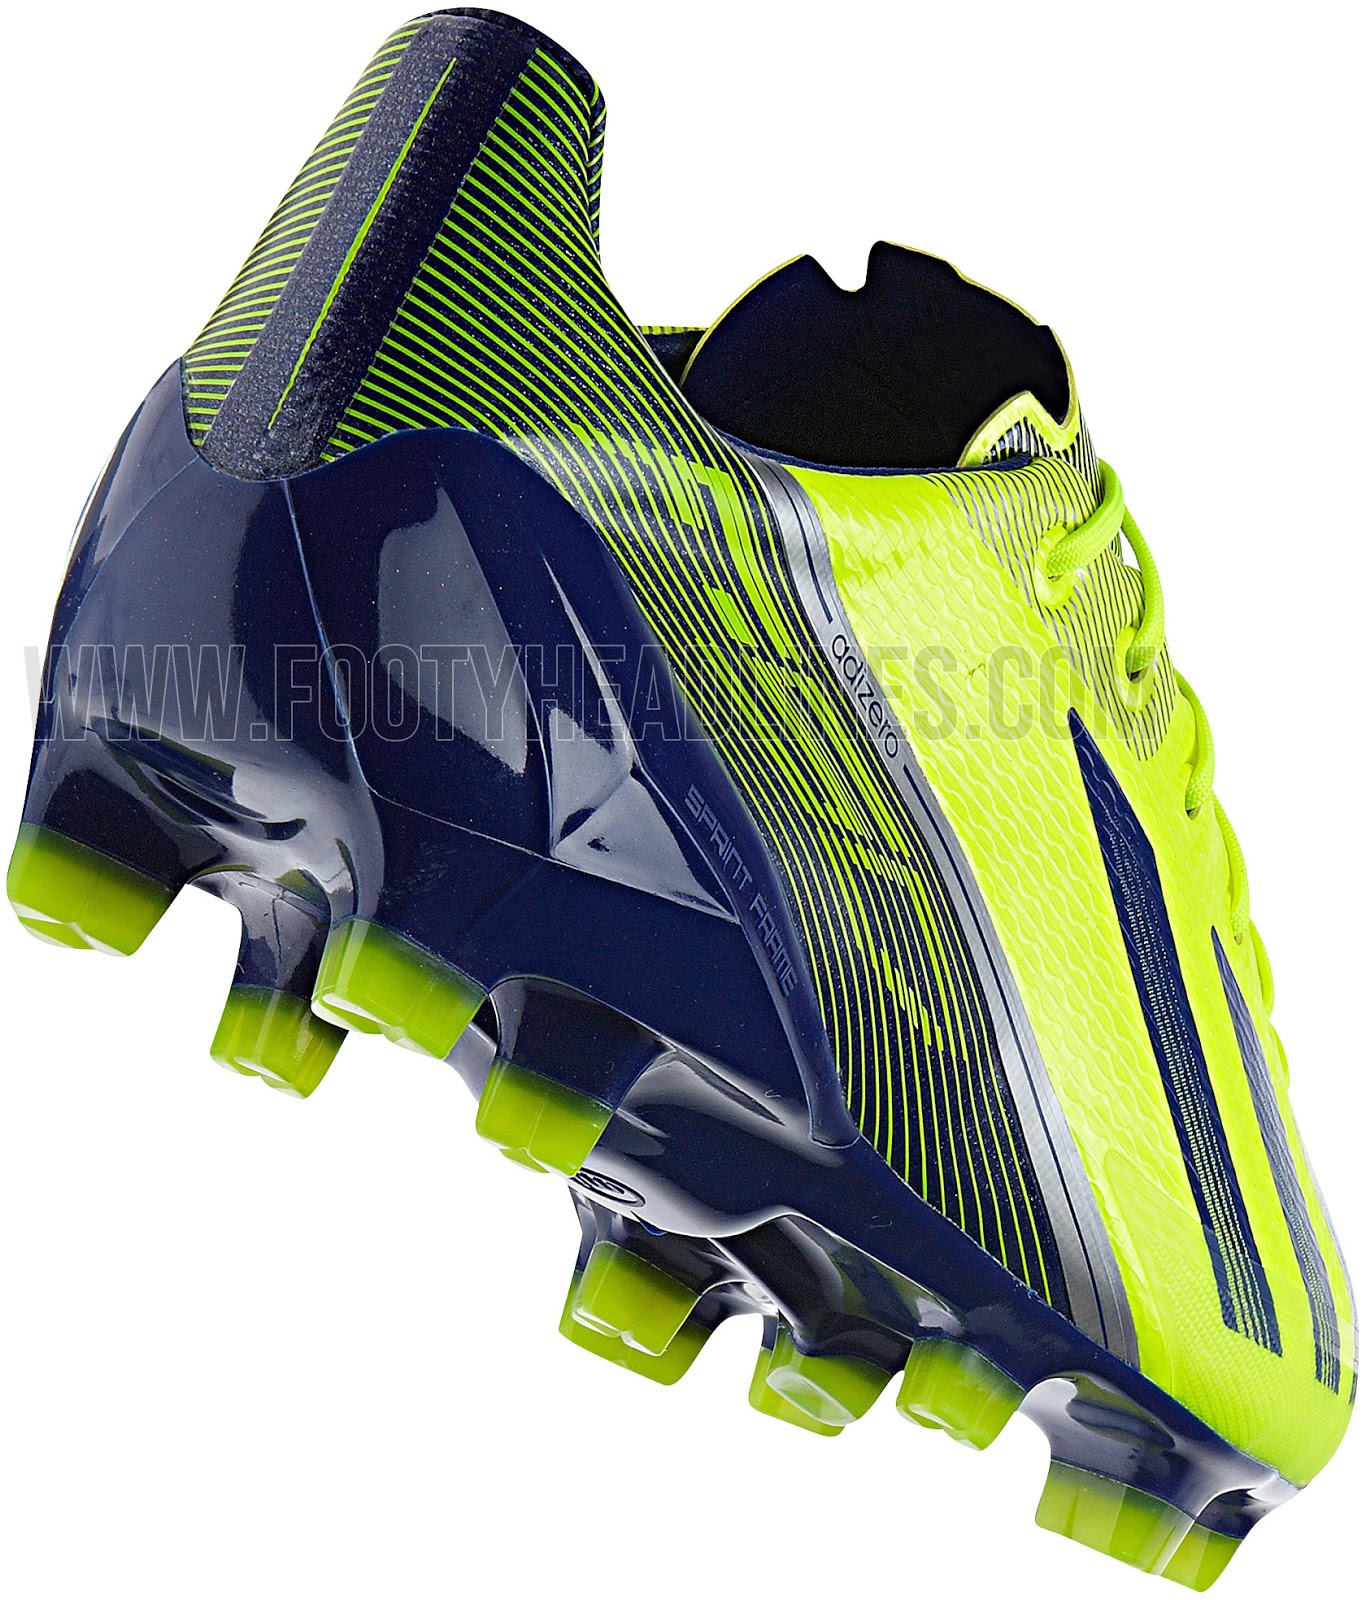 d423cb3c0 adidas AdiZero III F50 13-14 UCL Electricity Colorway Released ...